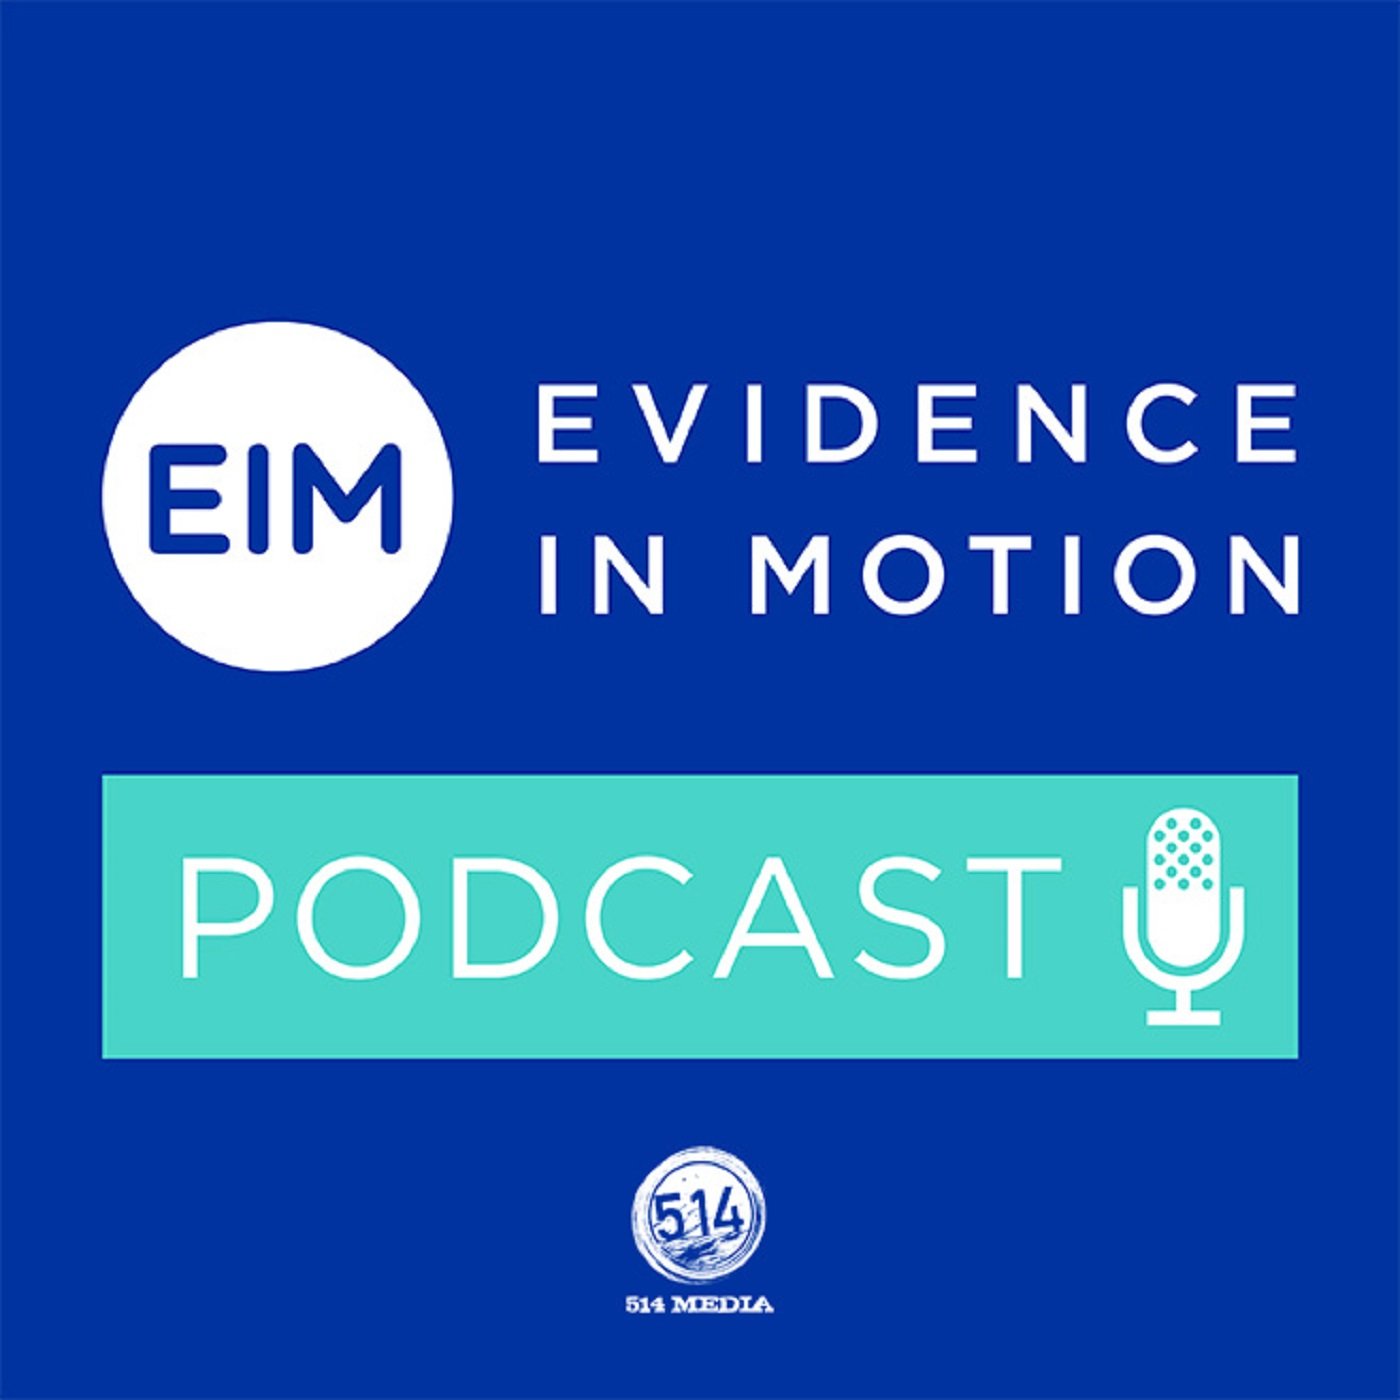 Clinical Podcast: Cannabis within Healthcare | Jeff Konin